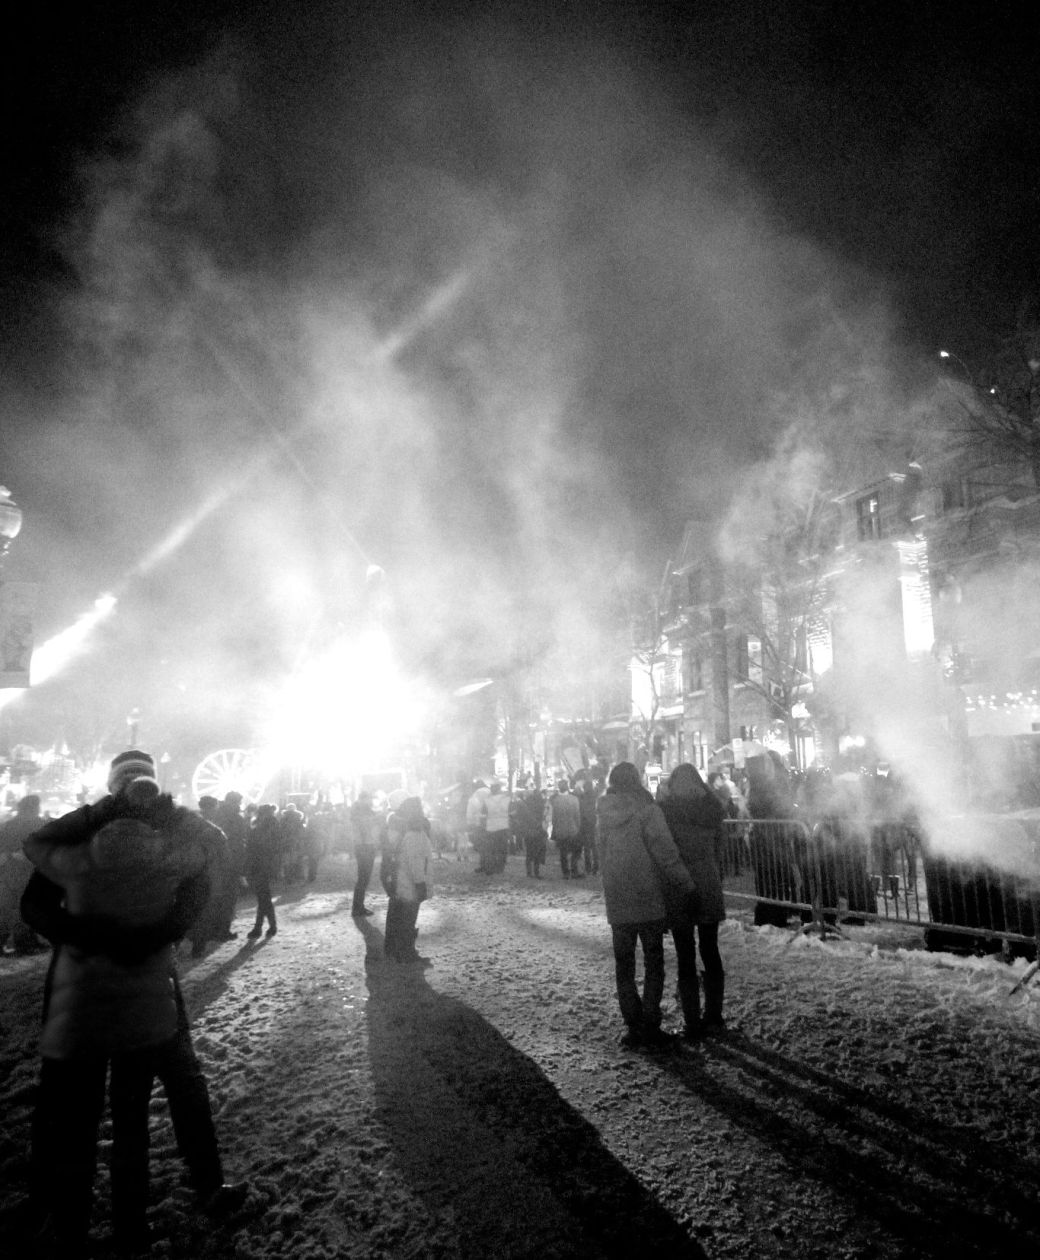 quebec city new years celebration december 31 2015 people smoke